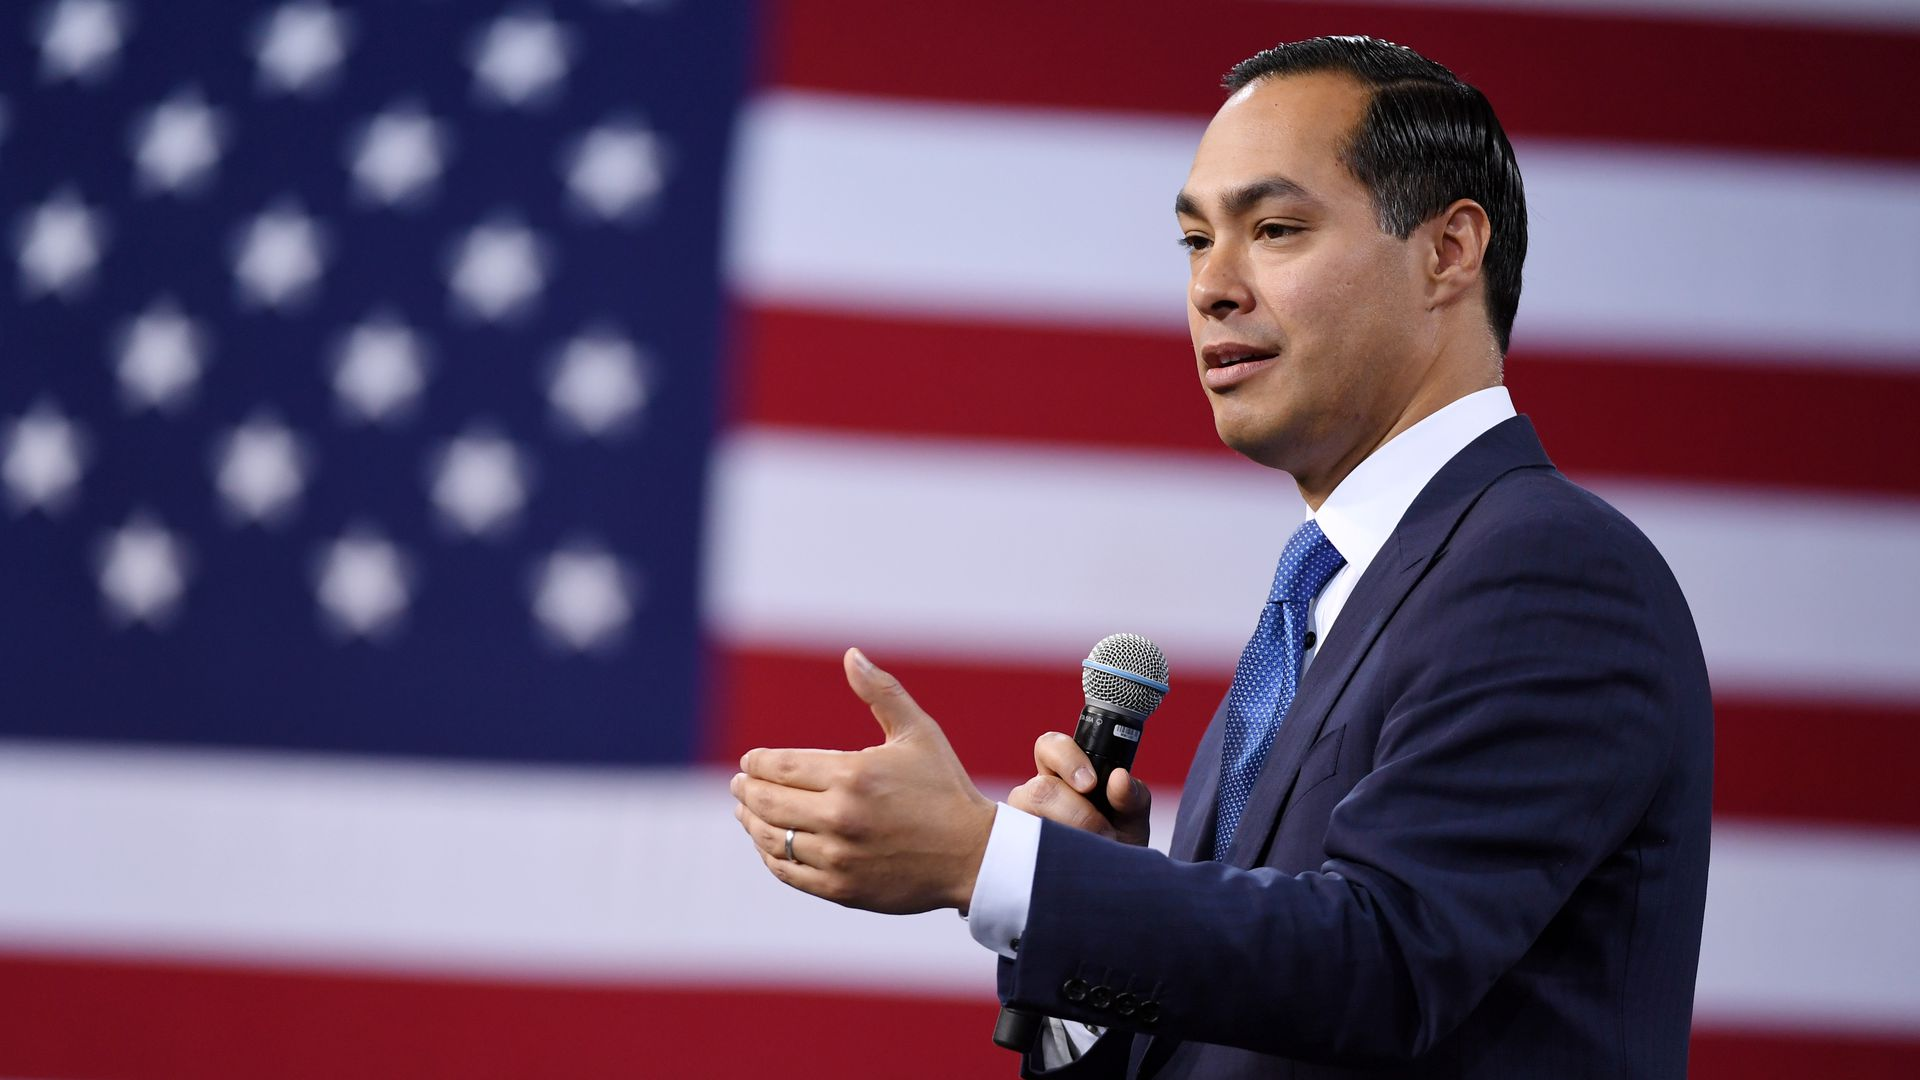 Presidential candidate Julian Castro